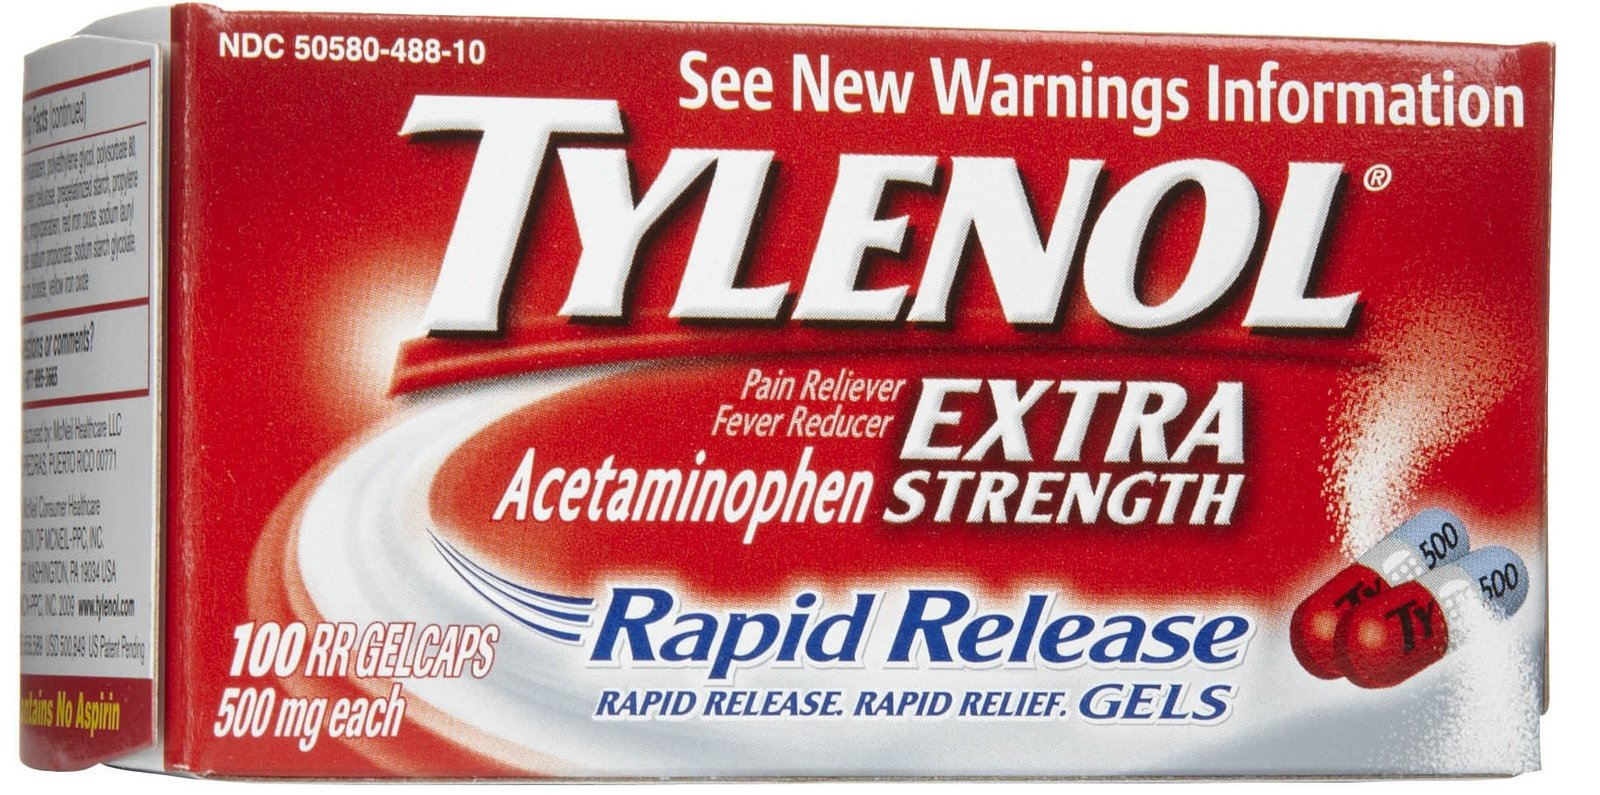 Tylenol Side Effects How To Take What To Avoid Amp More